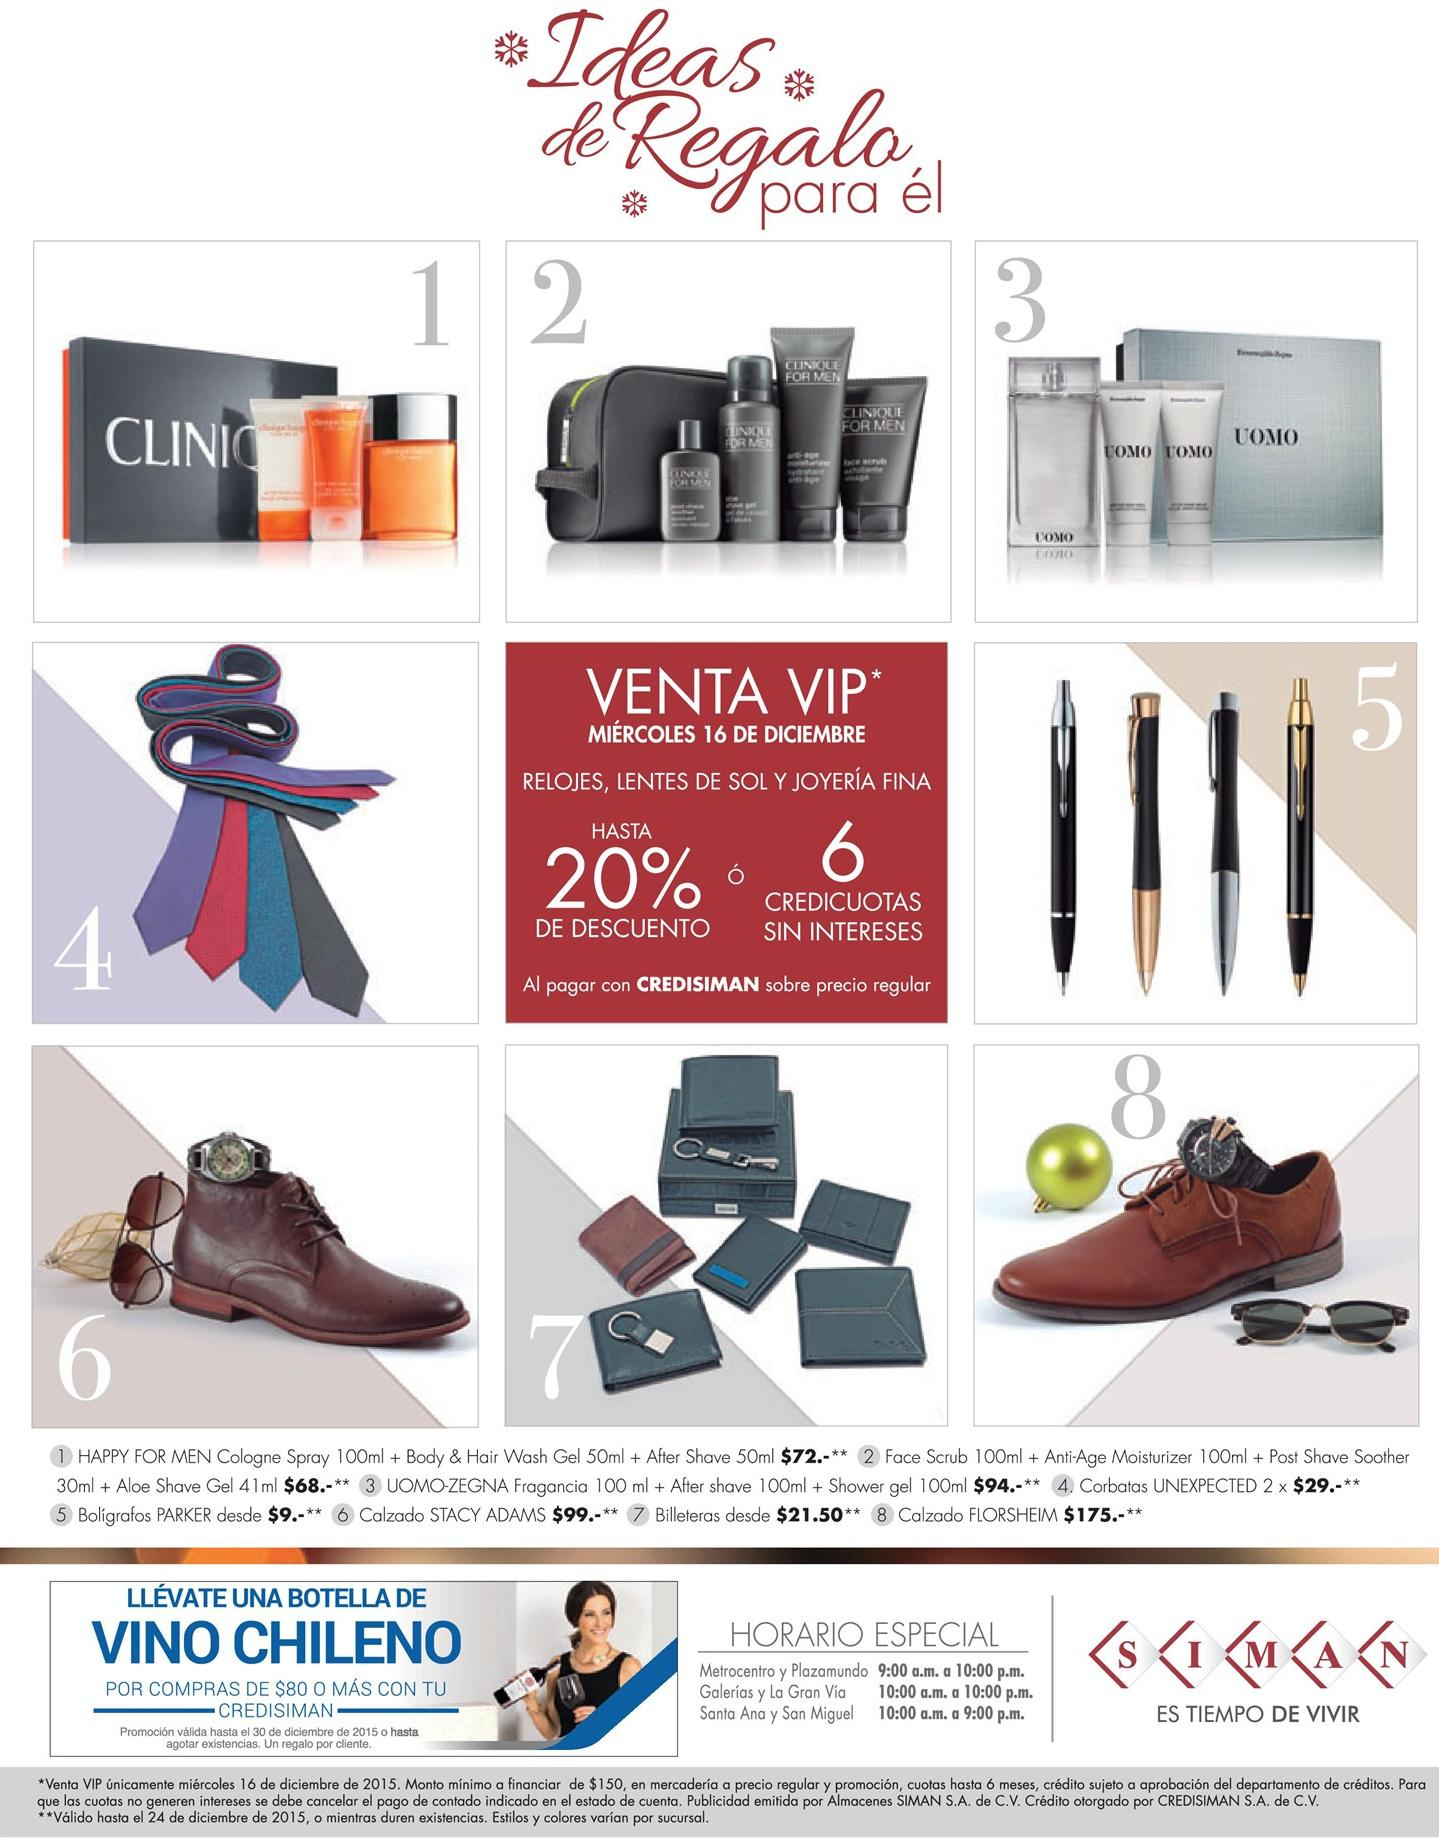 VENTA VIP for holidays gift by SIMAN